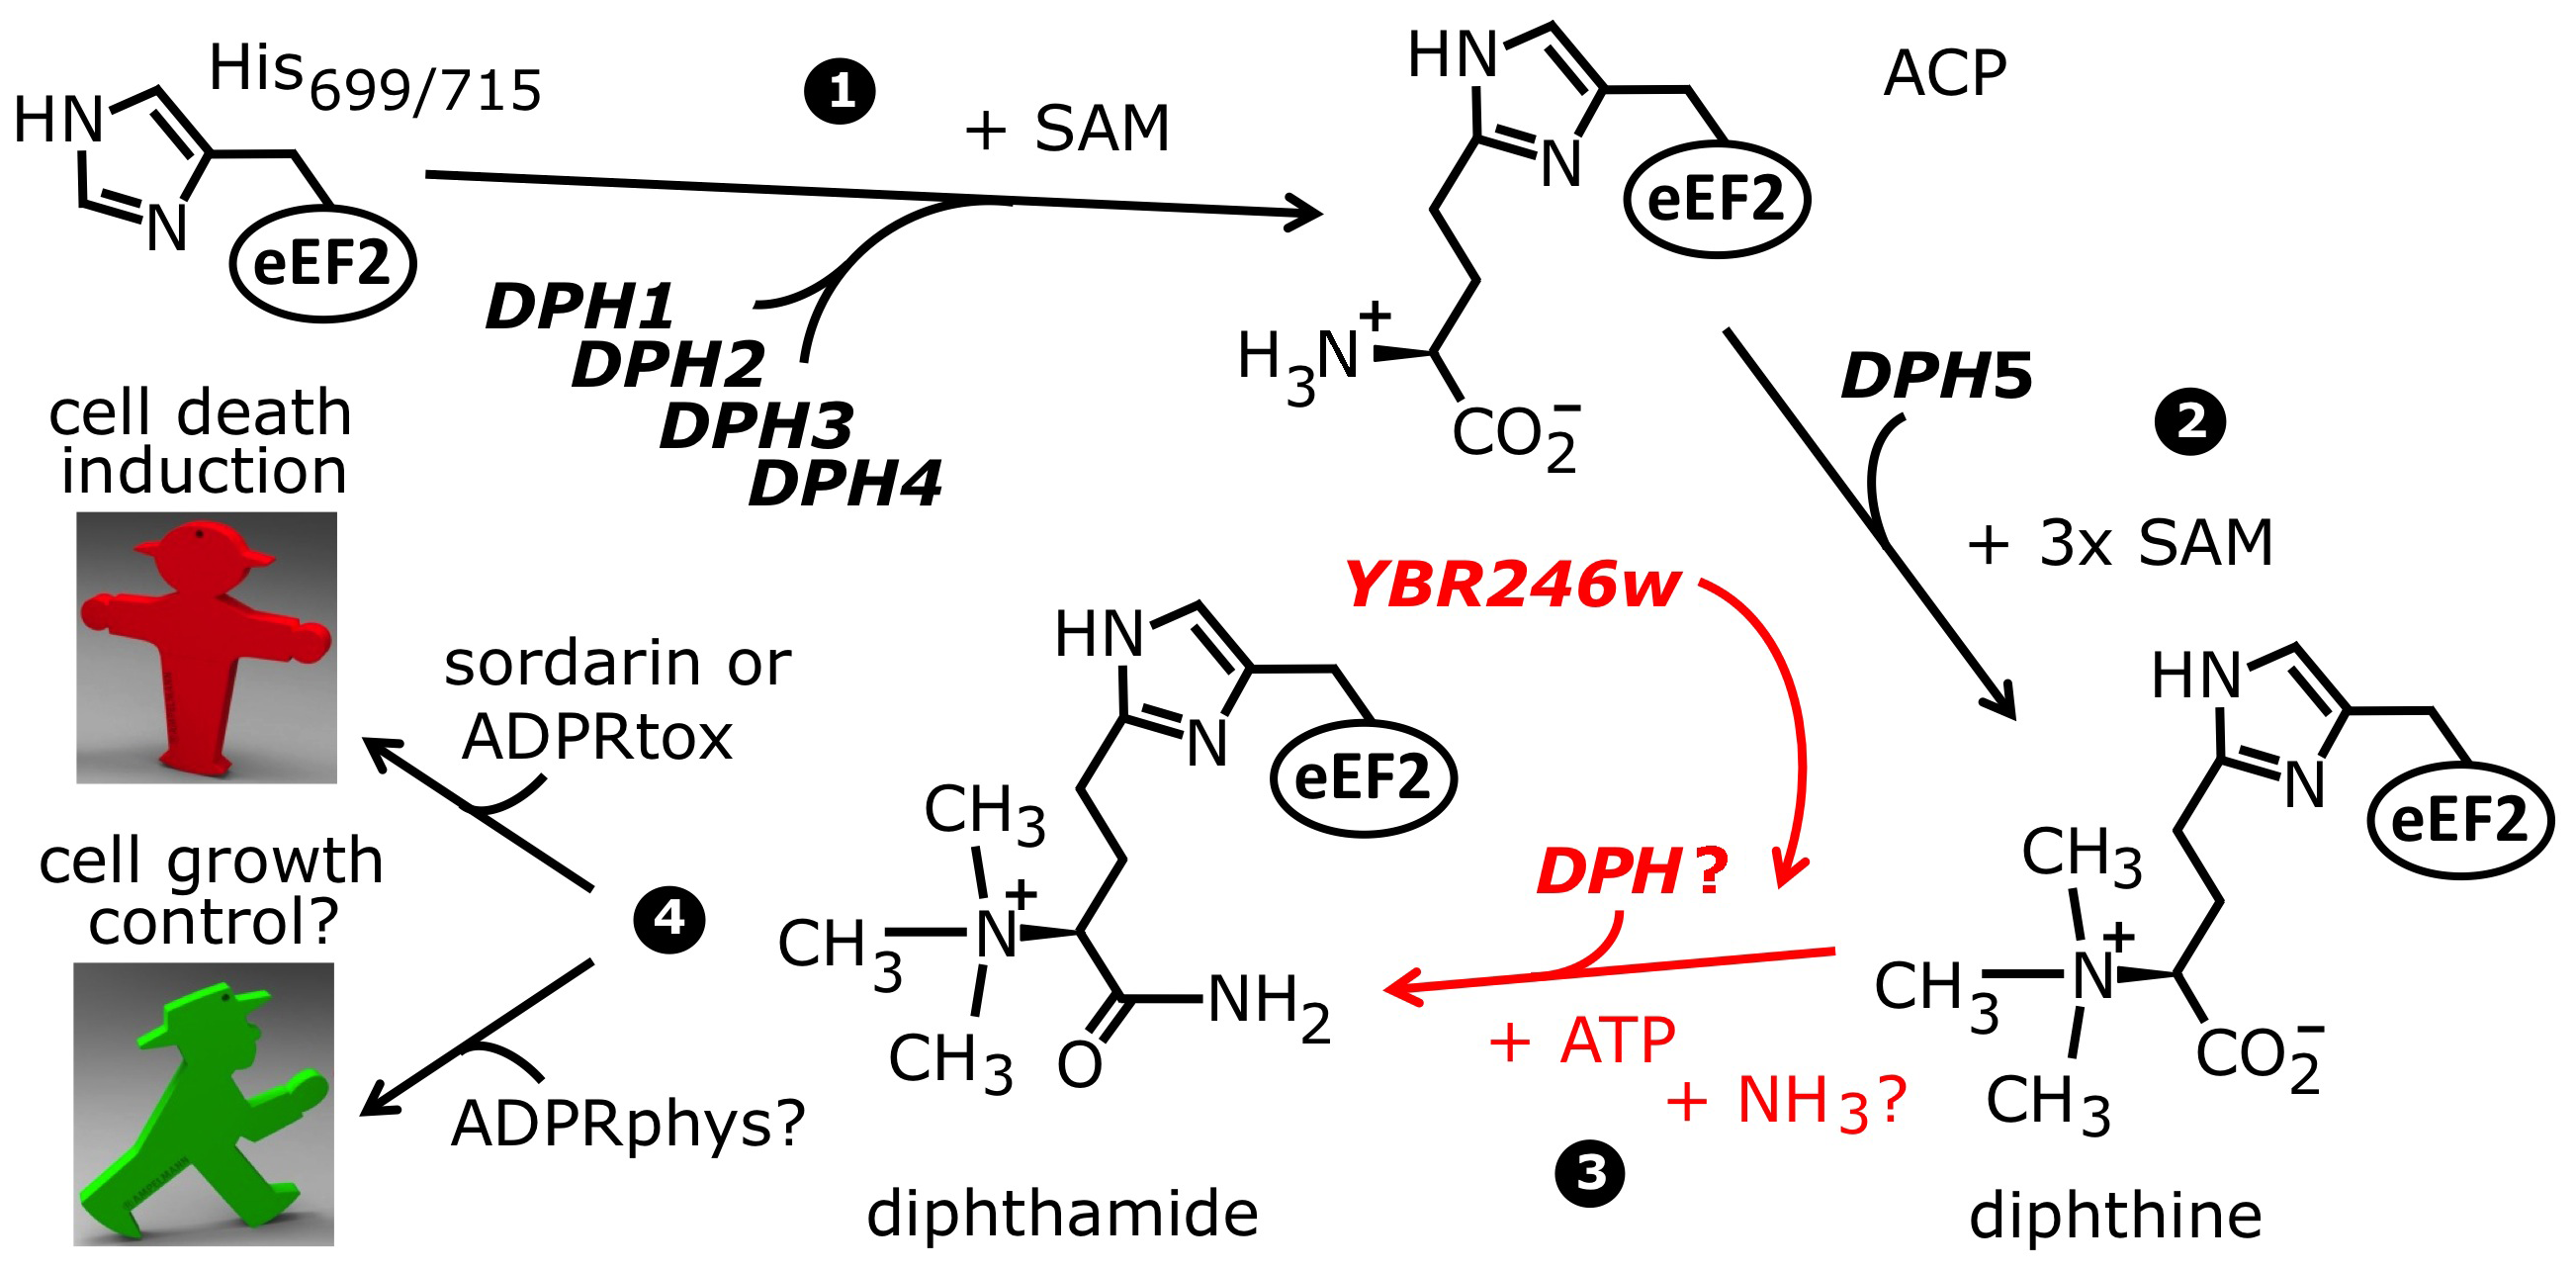 The biosynthetic pathway for modification of eEF2 by diphthamide.